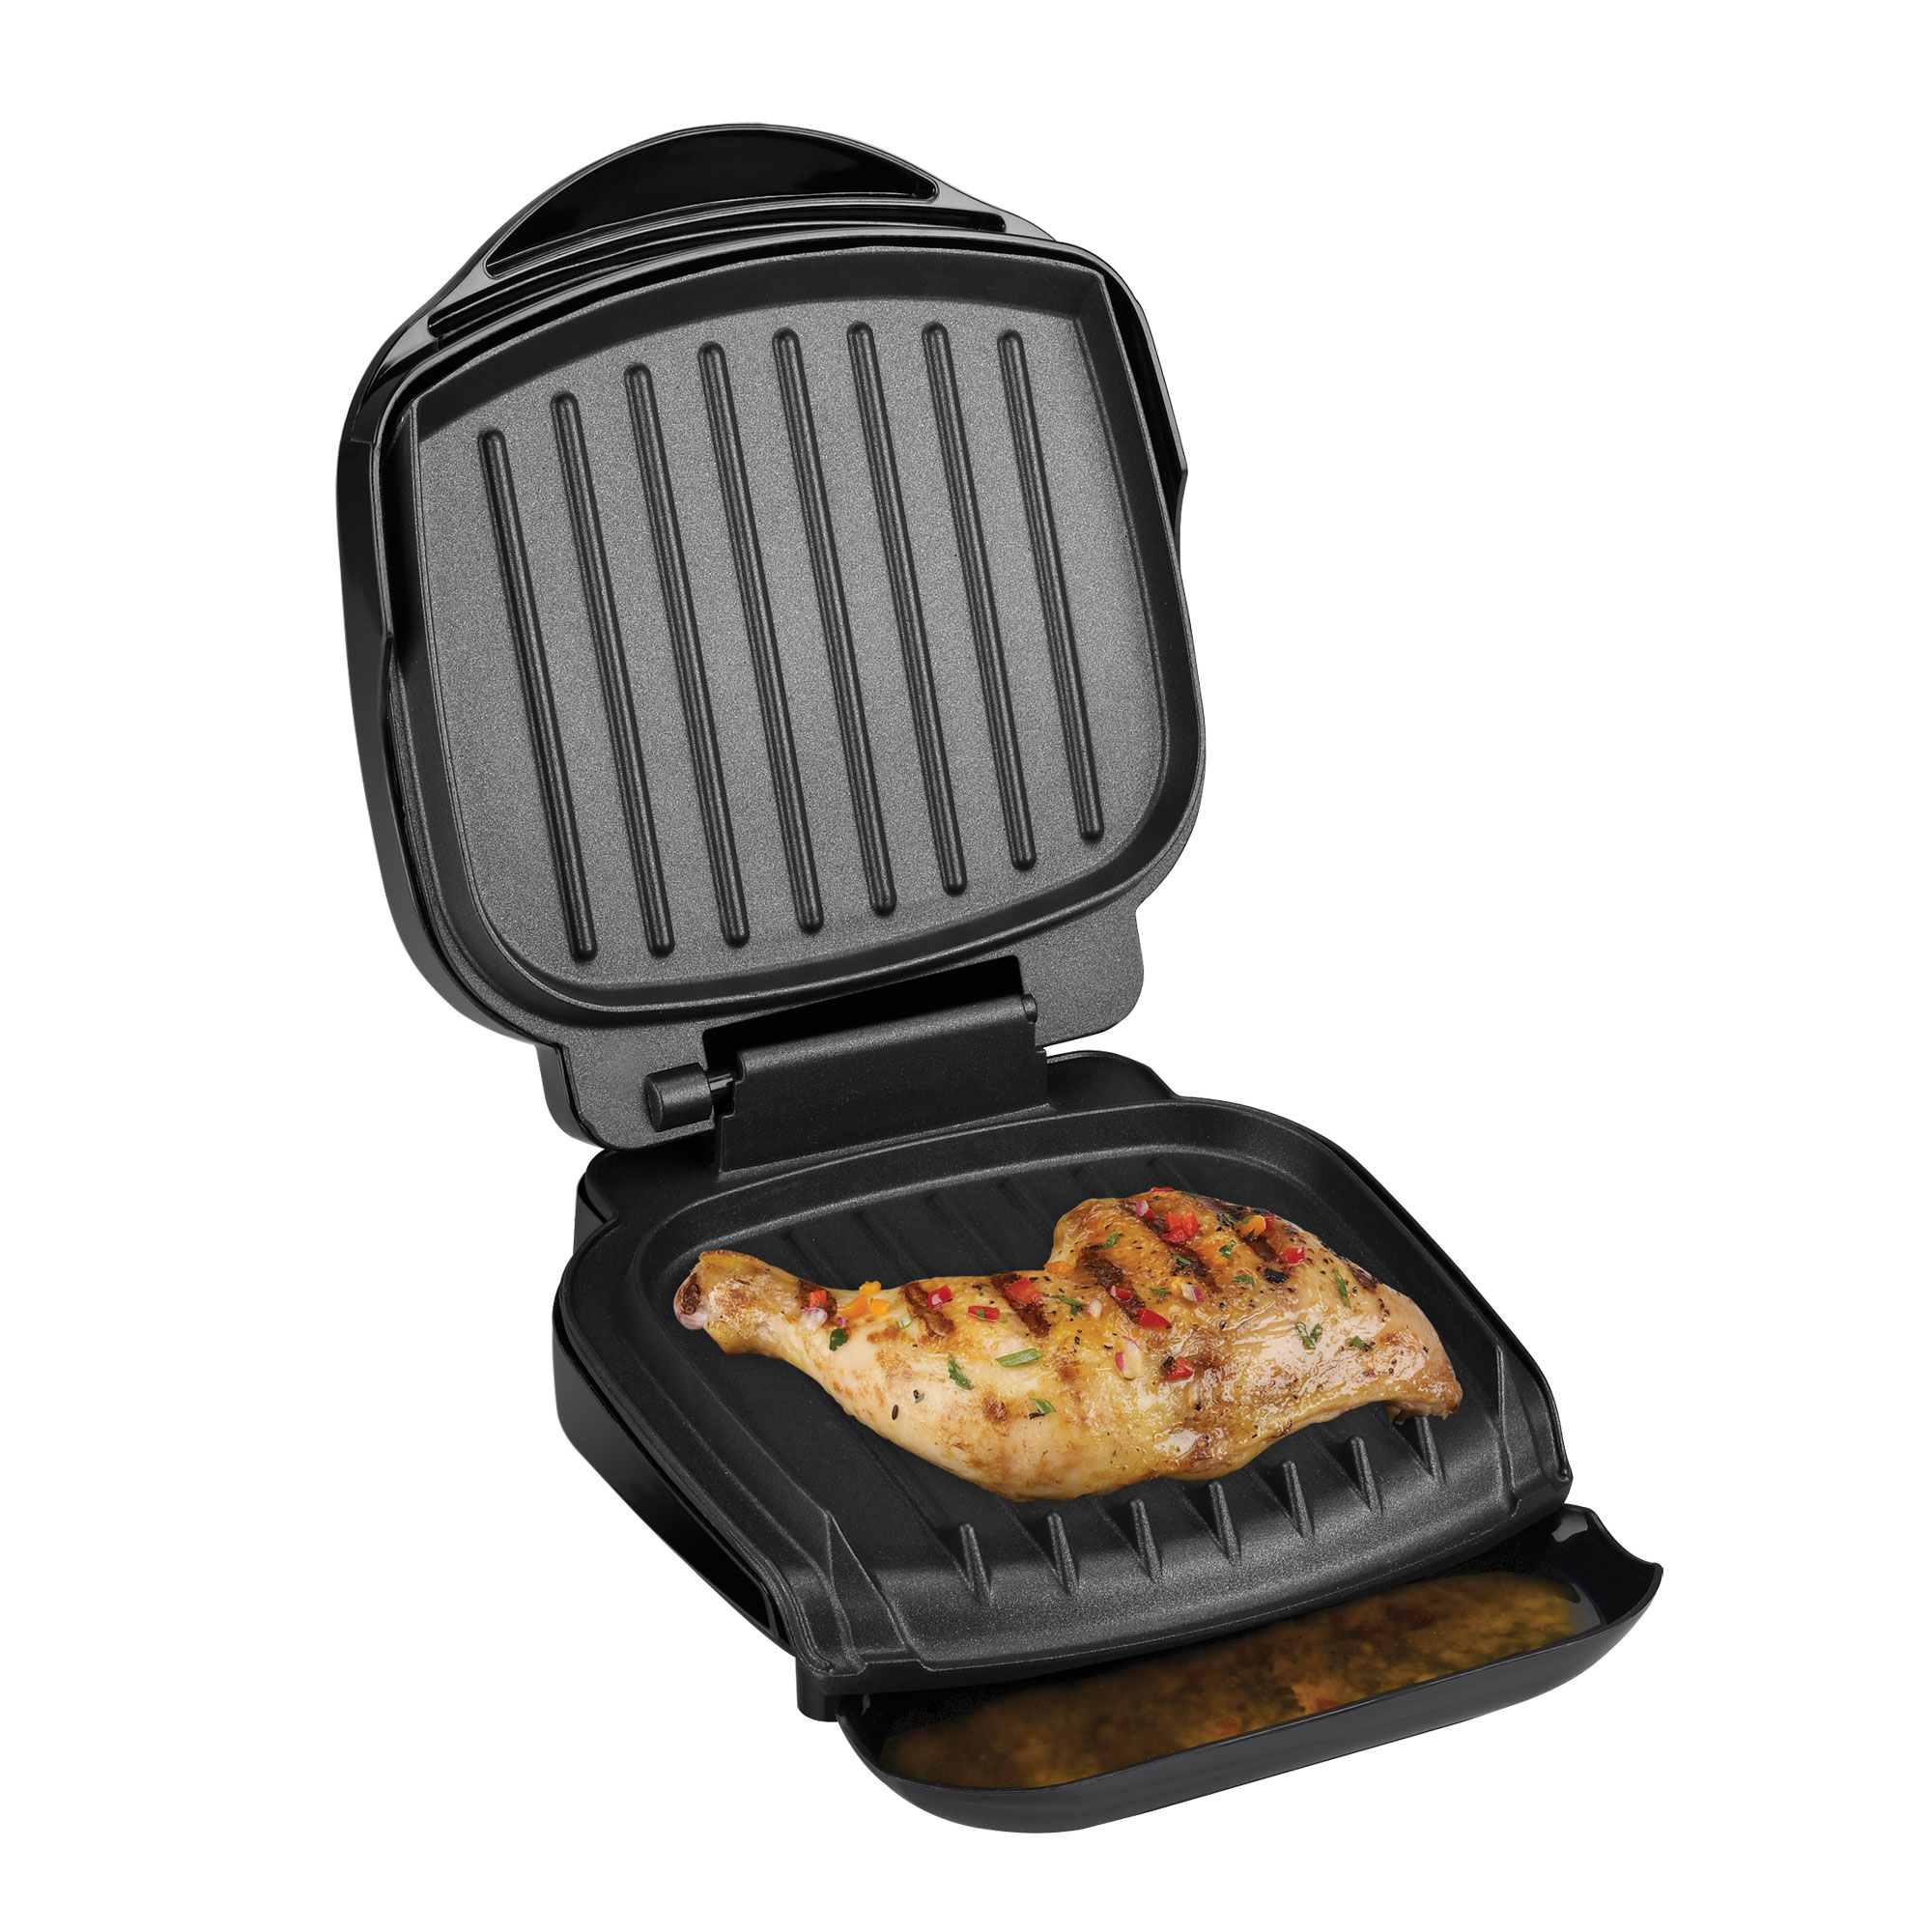 equipment - Small portable grill for a studio flat? - Seasoned Advice